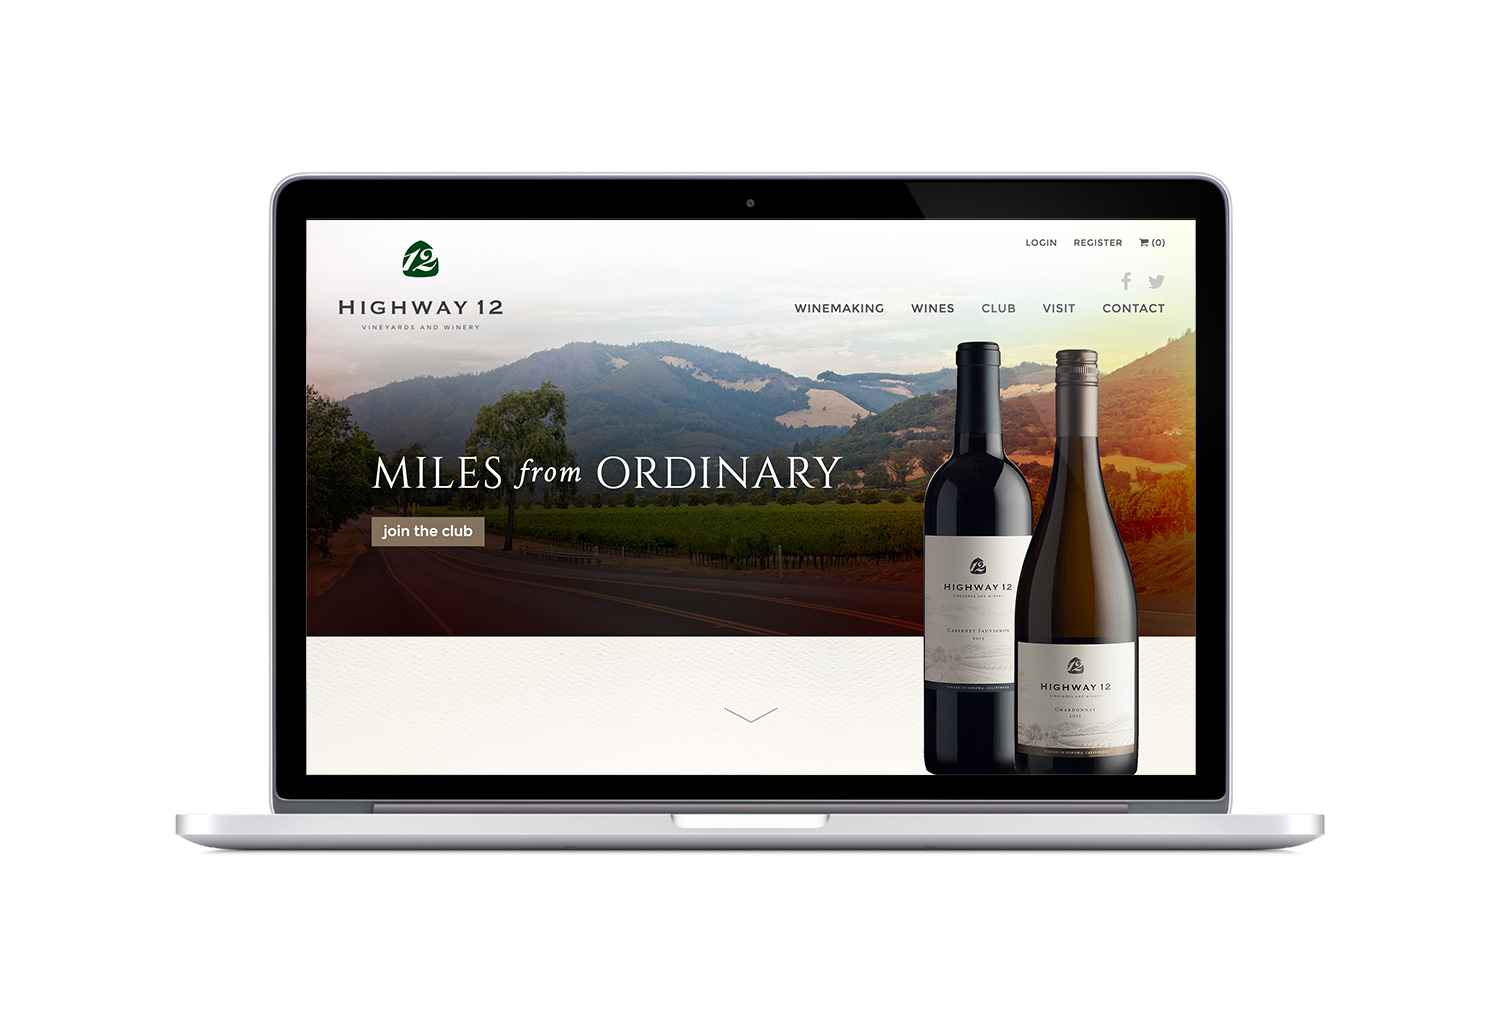 Highway 12 Winery Responsive Website Design